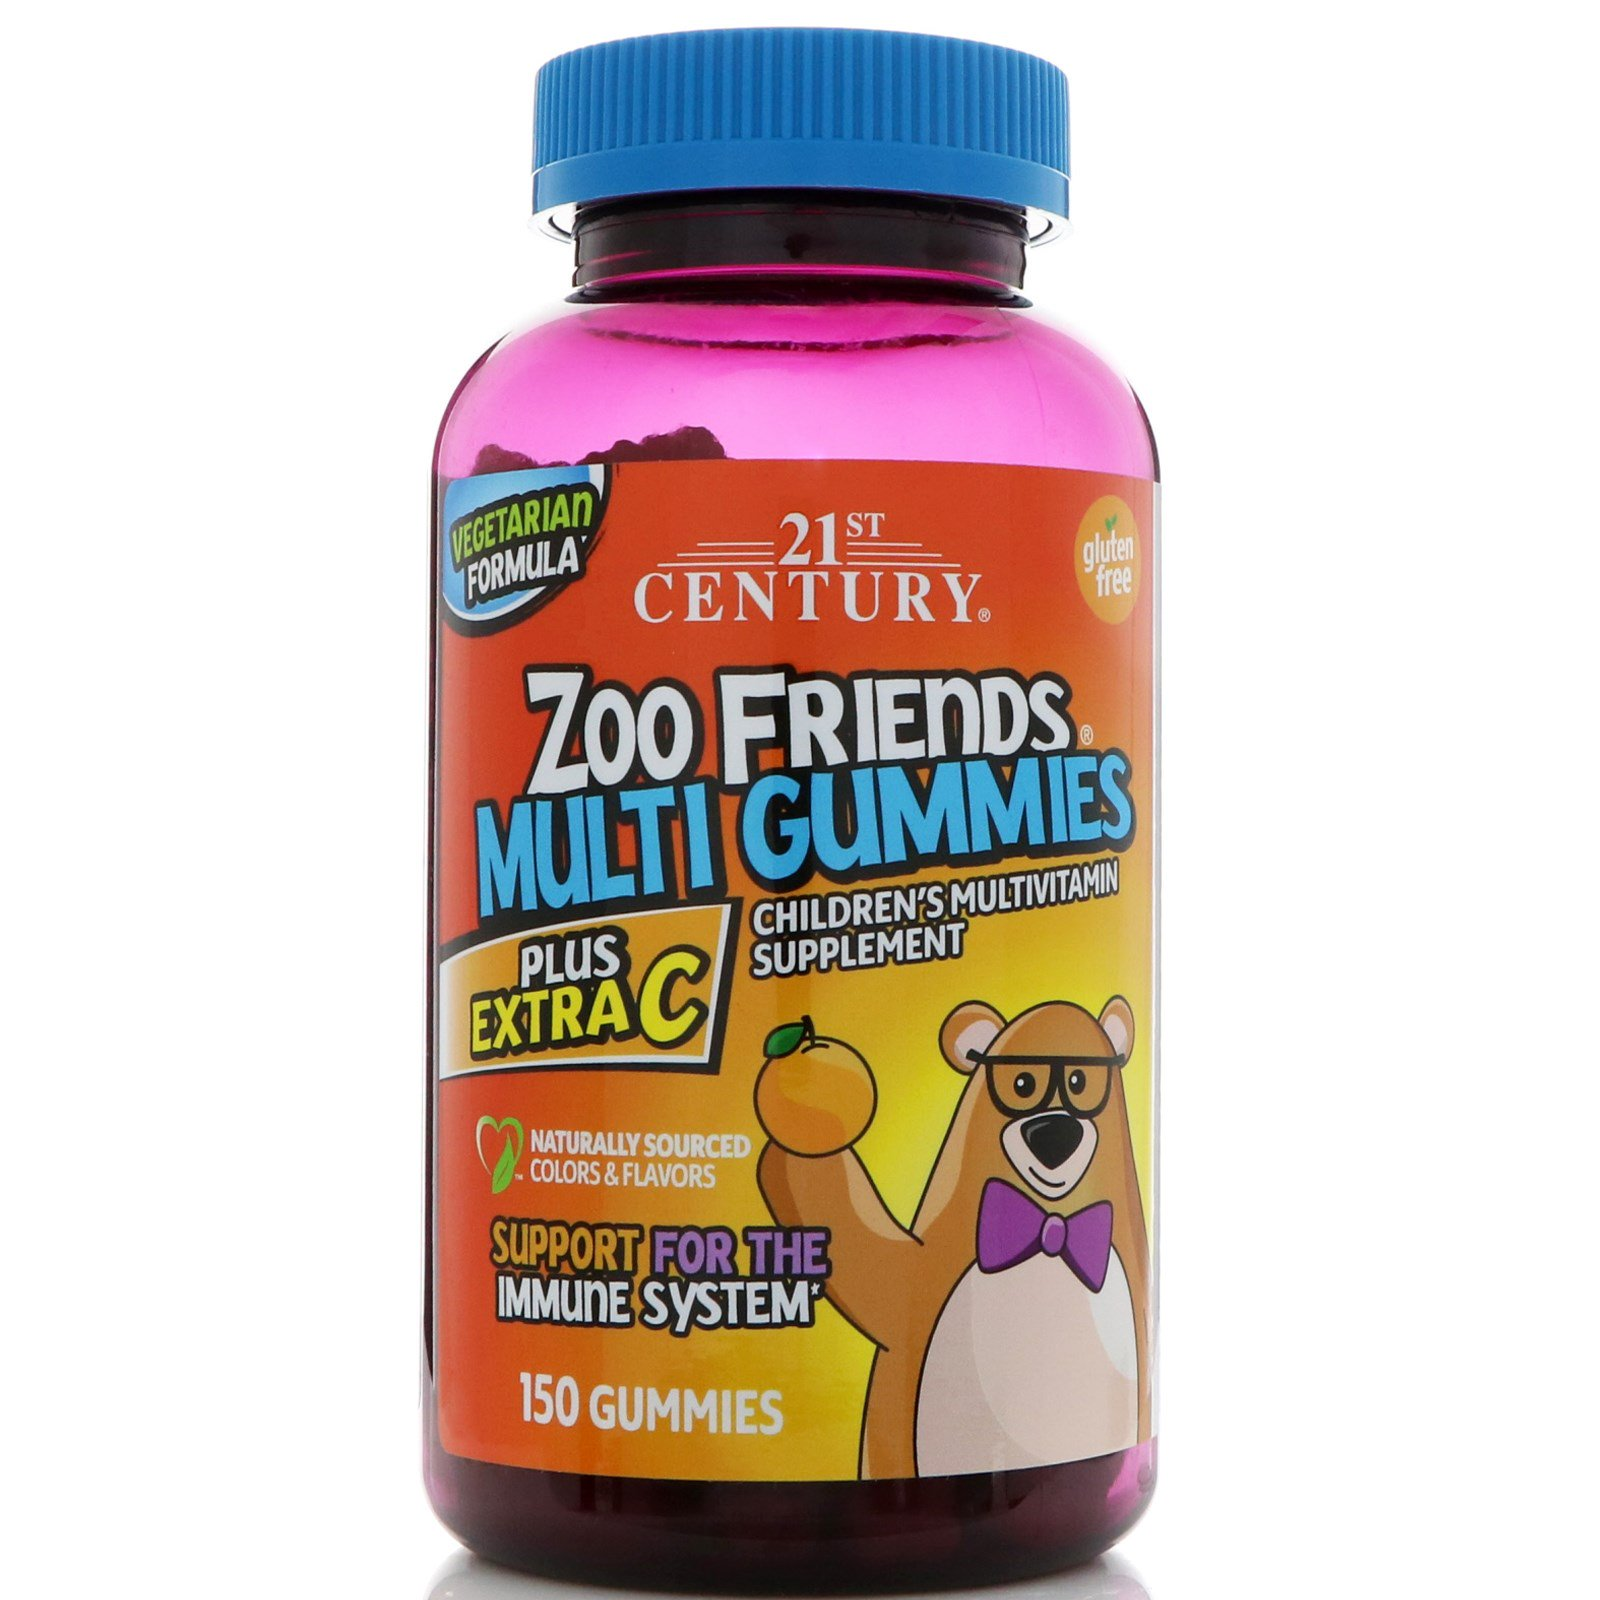 21st Century, Zoo Friends Multi Plus Extra C, 150 gummies